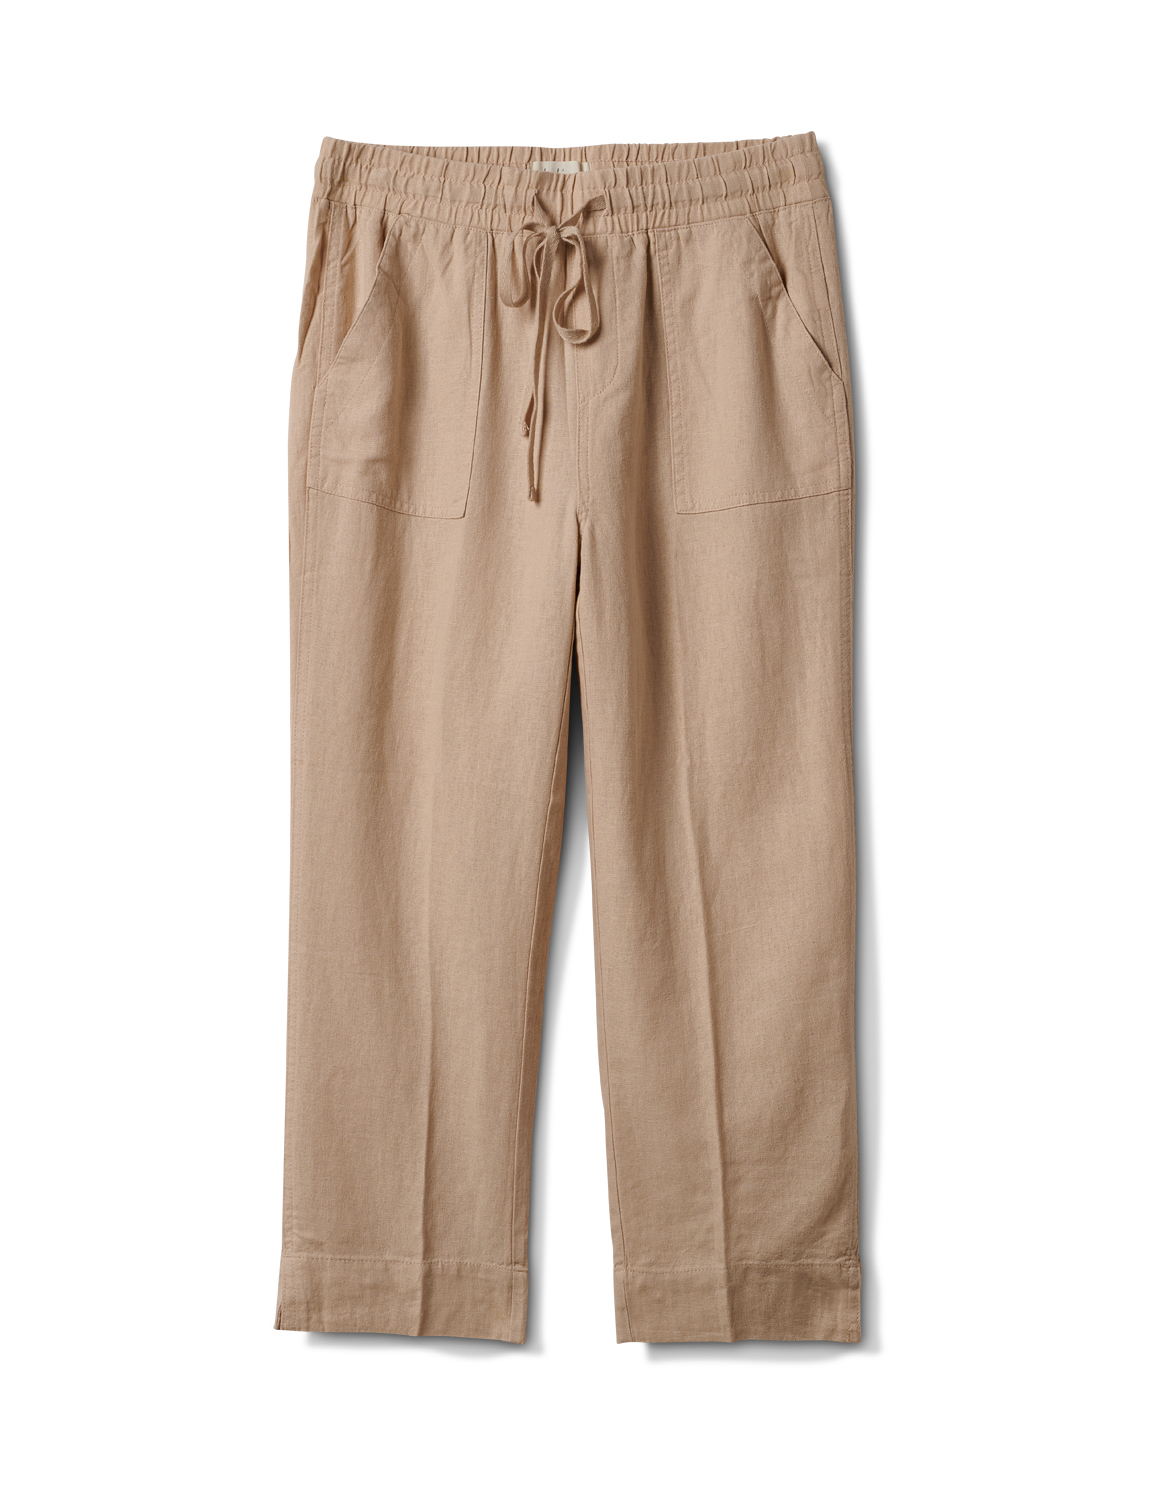 Drawstring  Waist Pull On Crop Pant With Pockets -Natural - Front